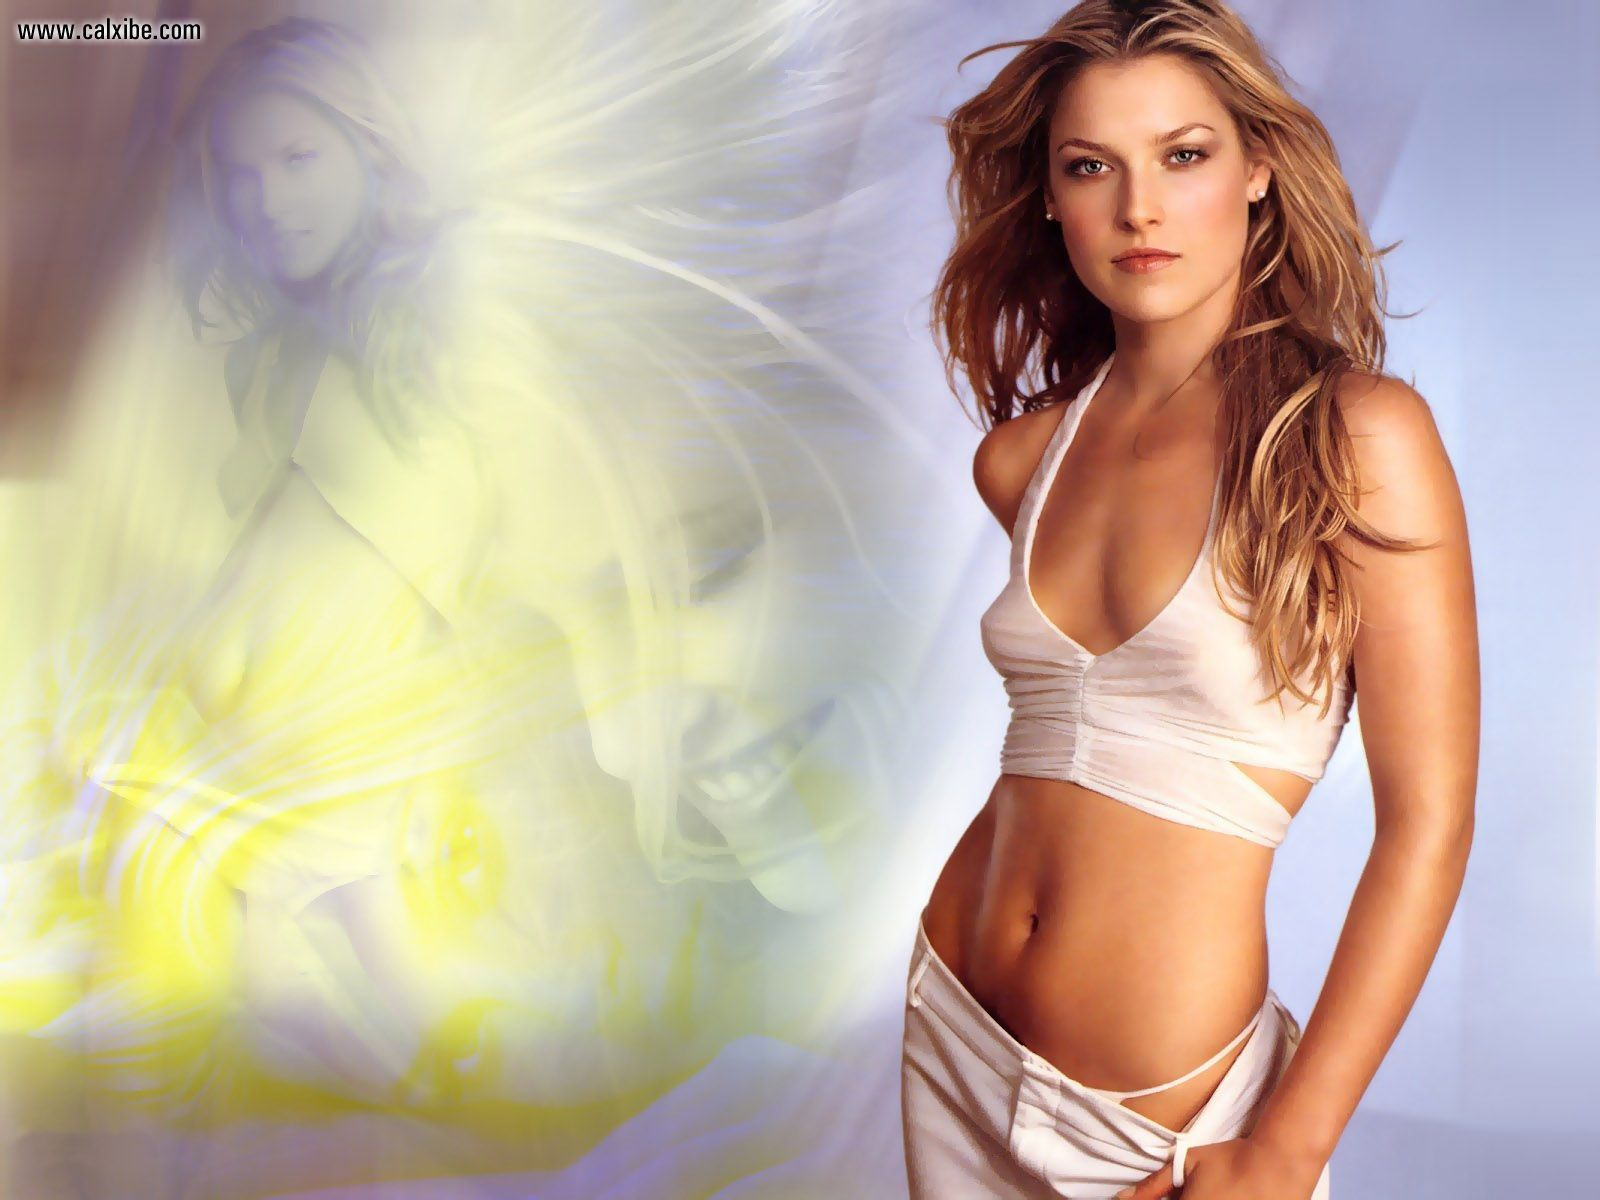 American Actress Ali Larter Girls Idols Wallpapers And